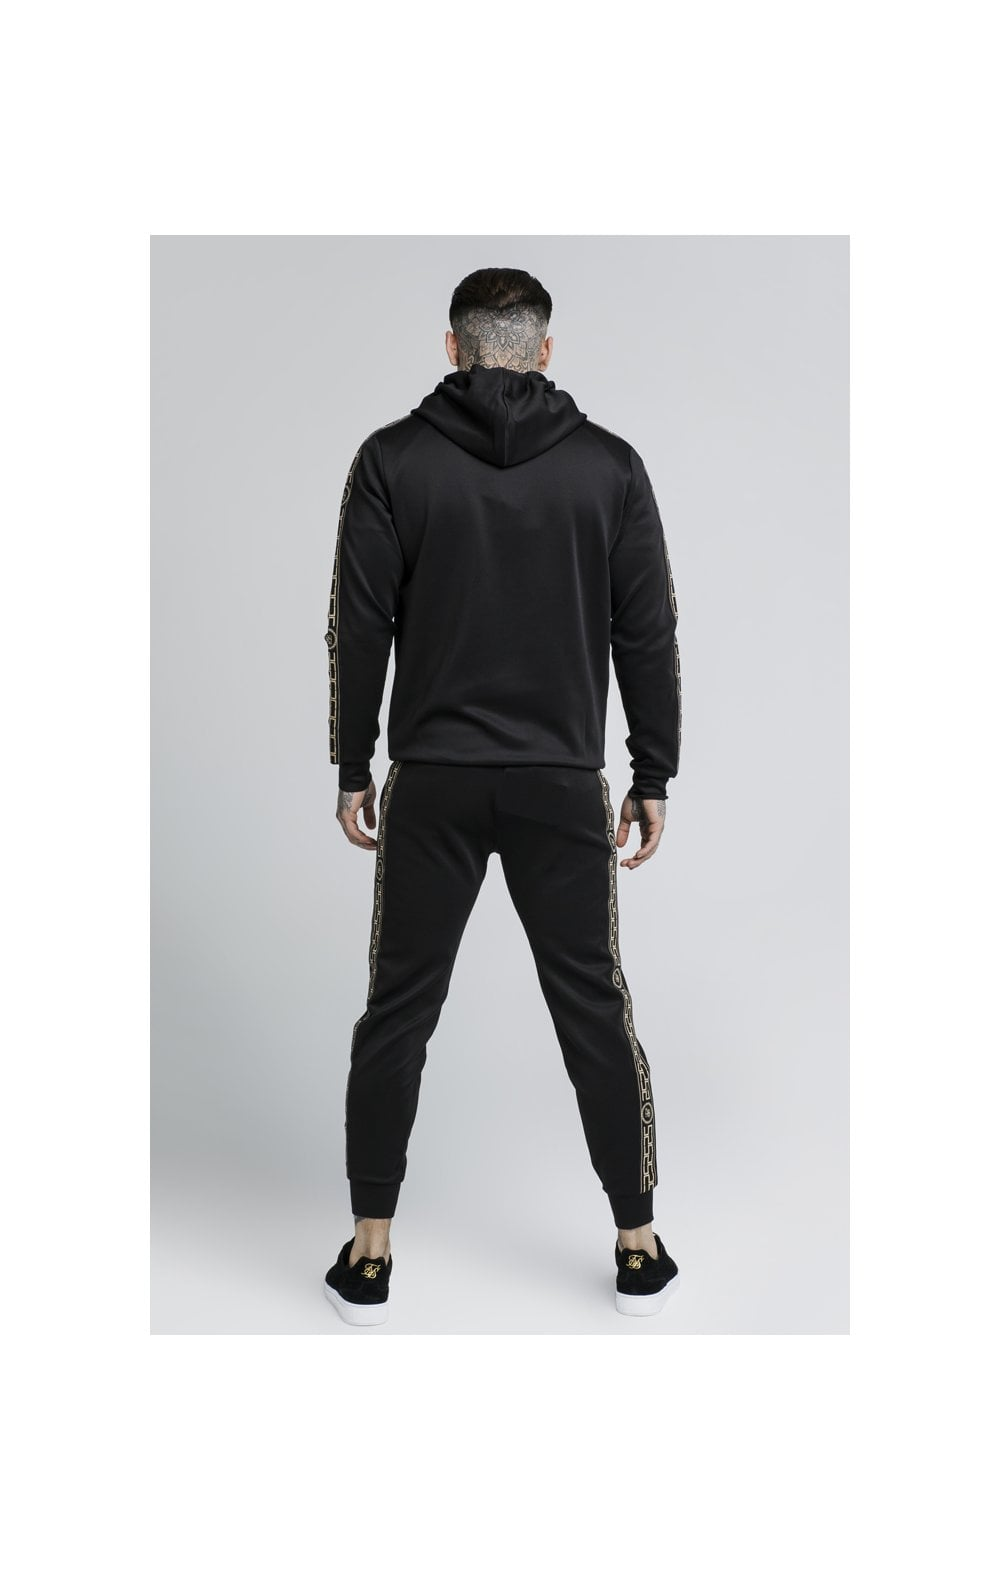 Load image into Gallery viewer, SikSilk Cartel Poly Overhead Hoodie - Black (3)